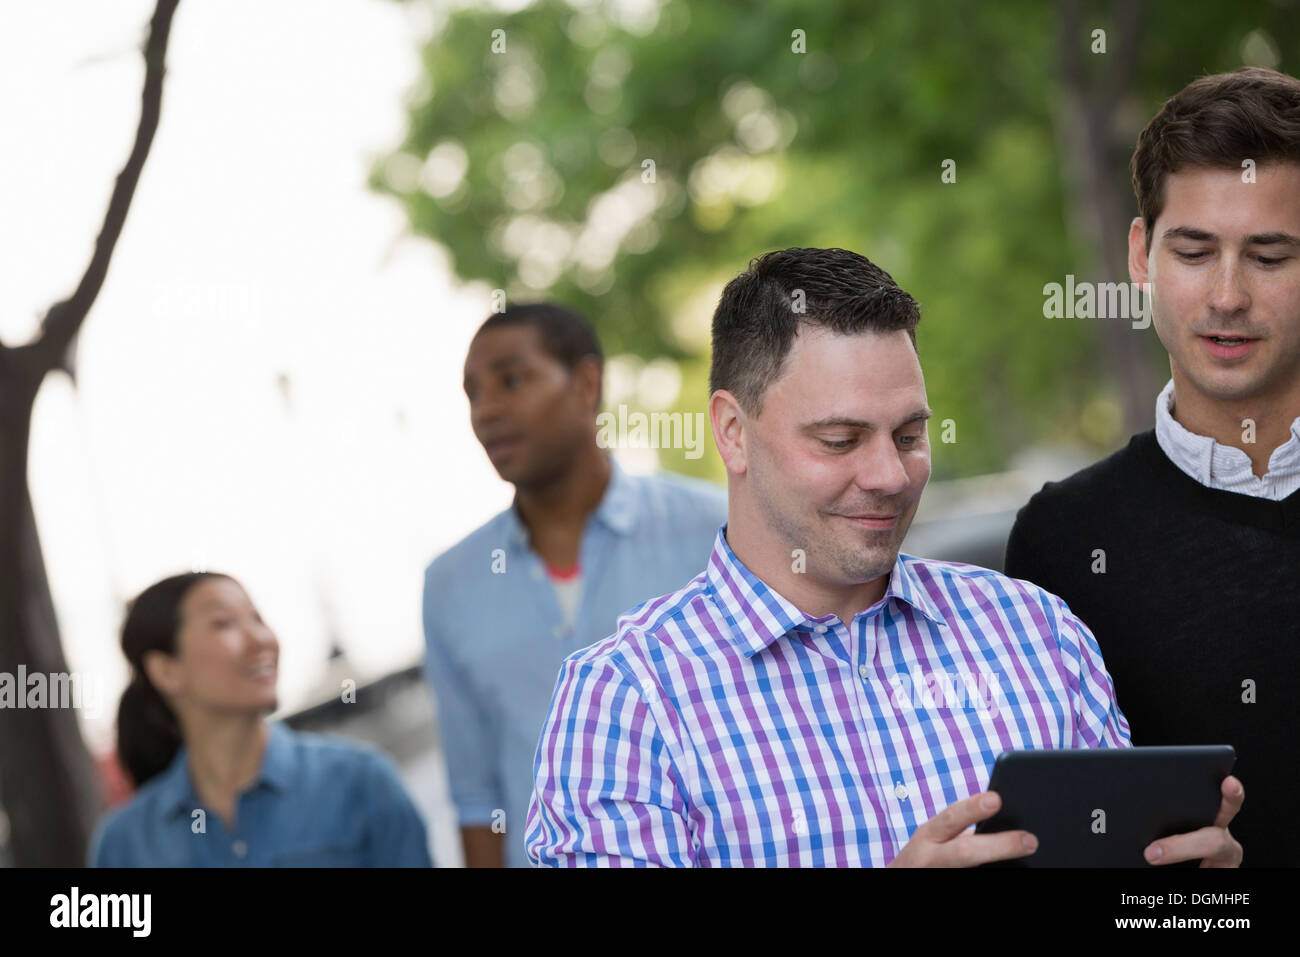 Summer in the city. Four people in a group. One using his digital tablet. - Stock Image